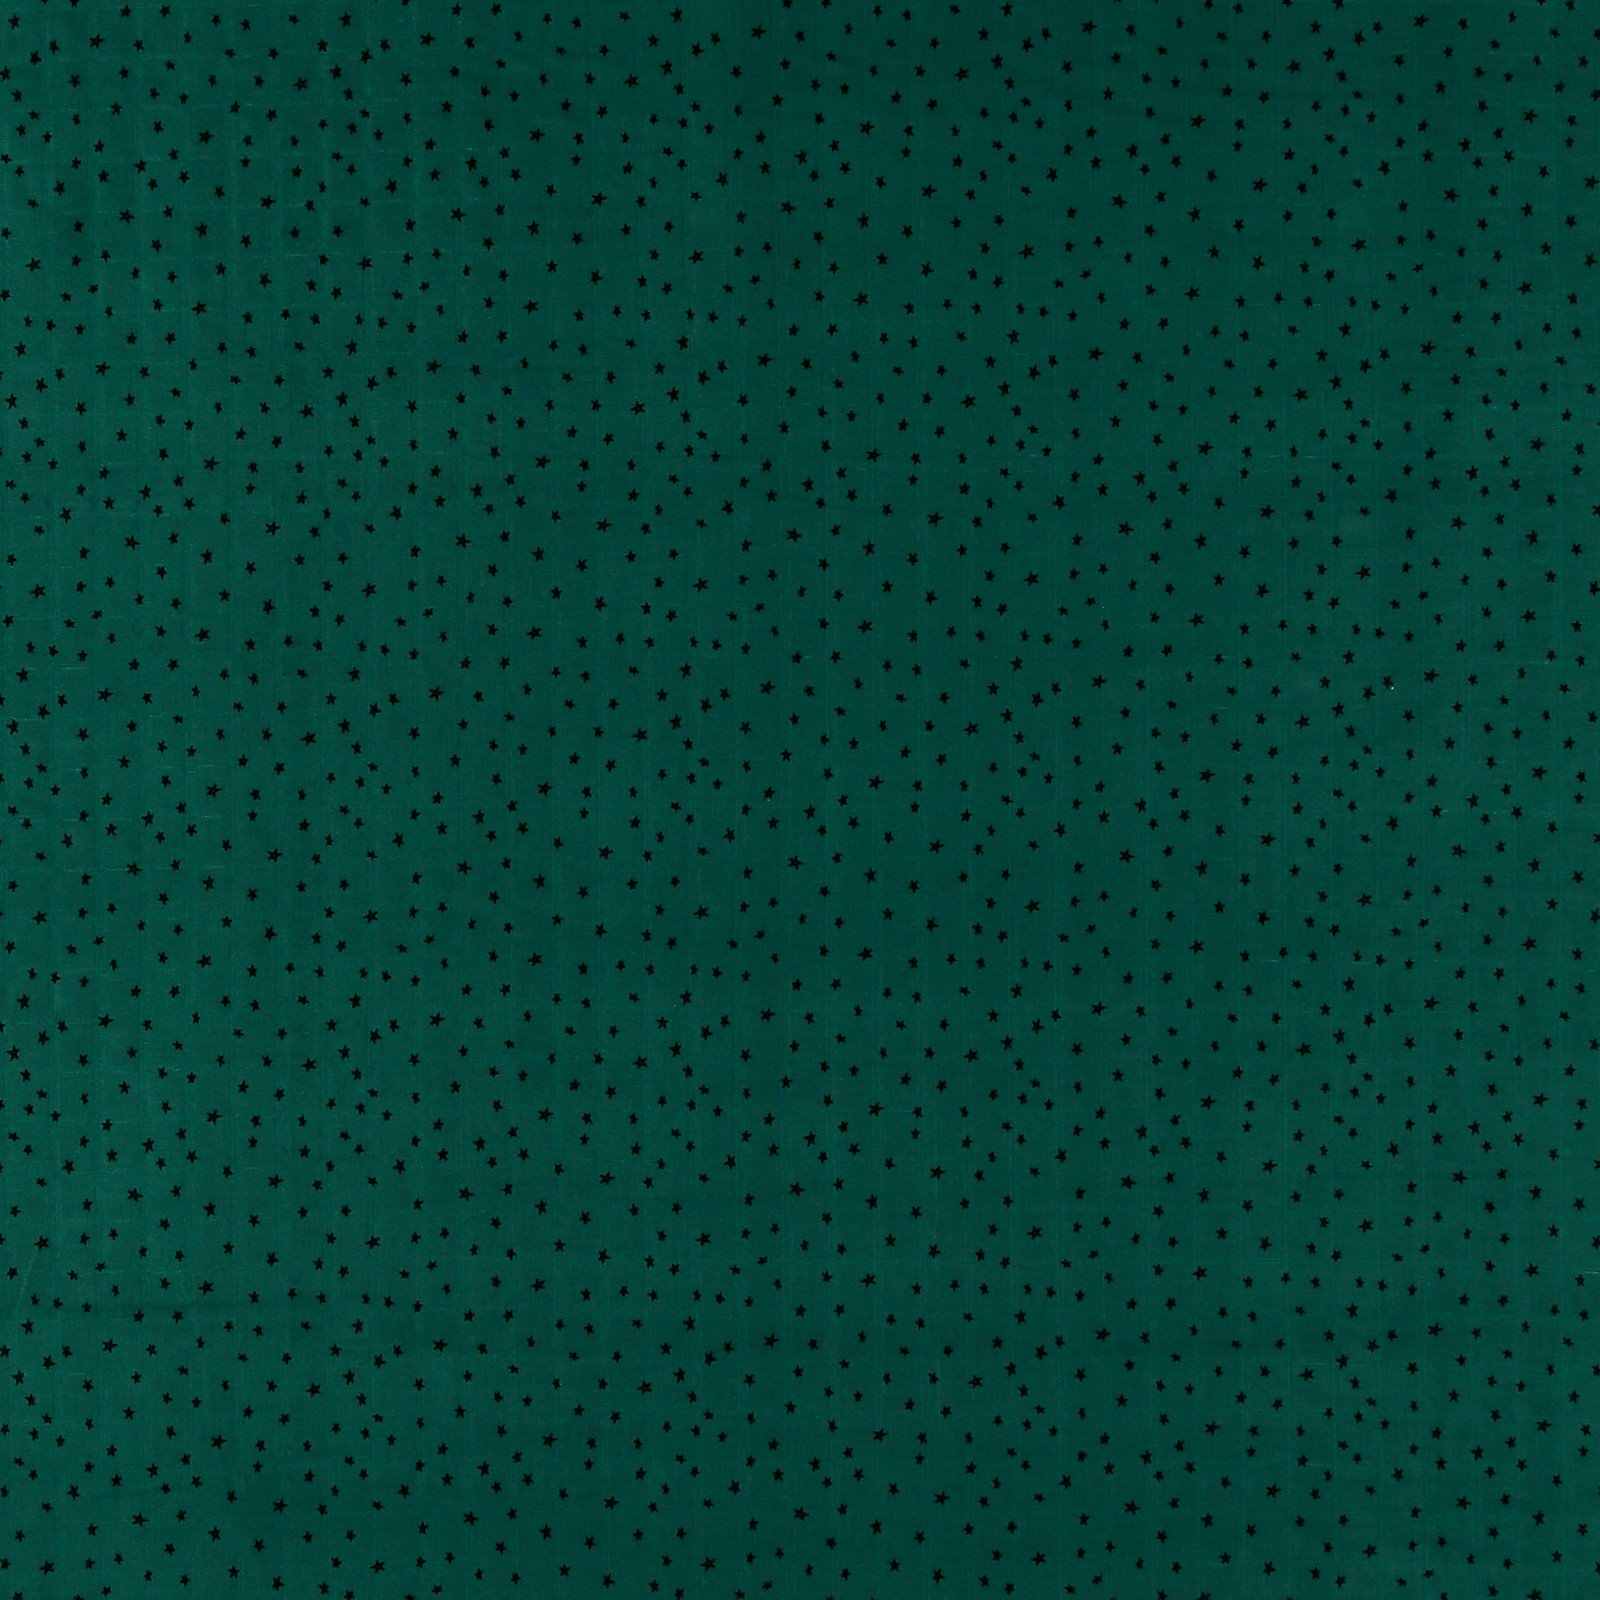 Muslin petrol green with stars 501863_pack_sp